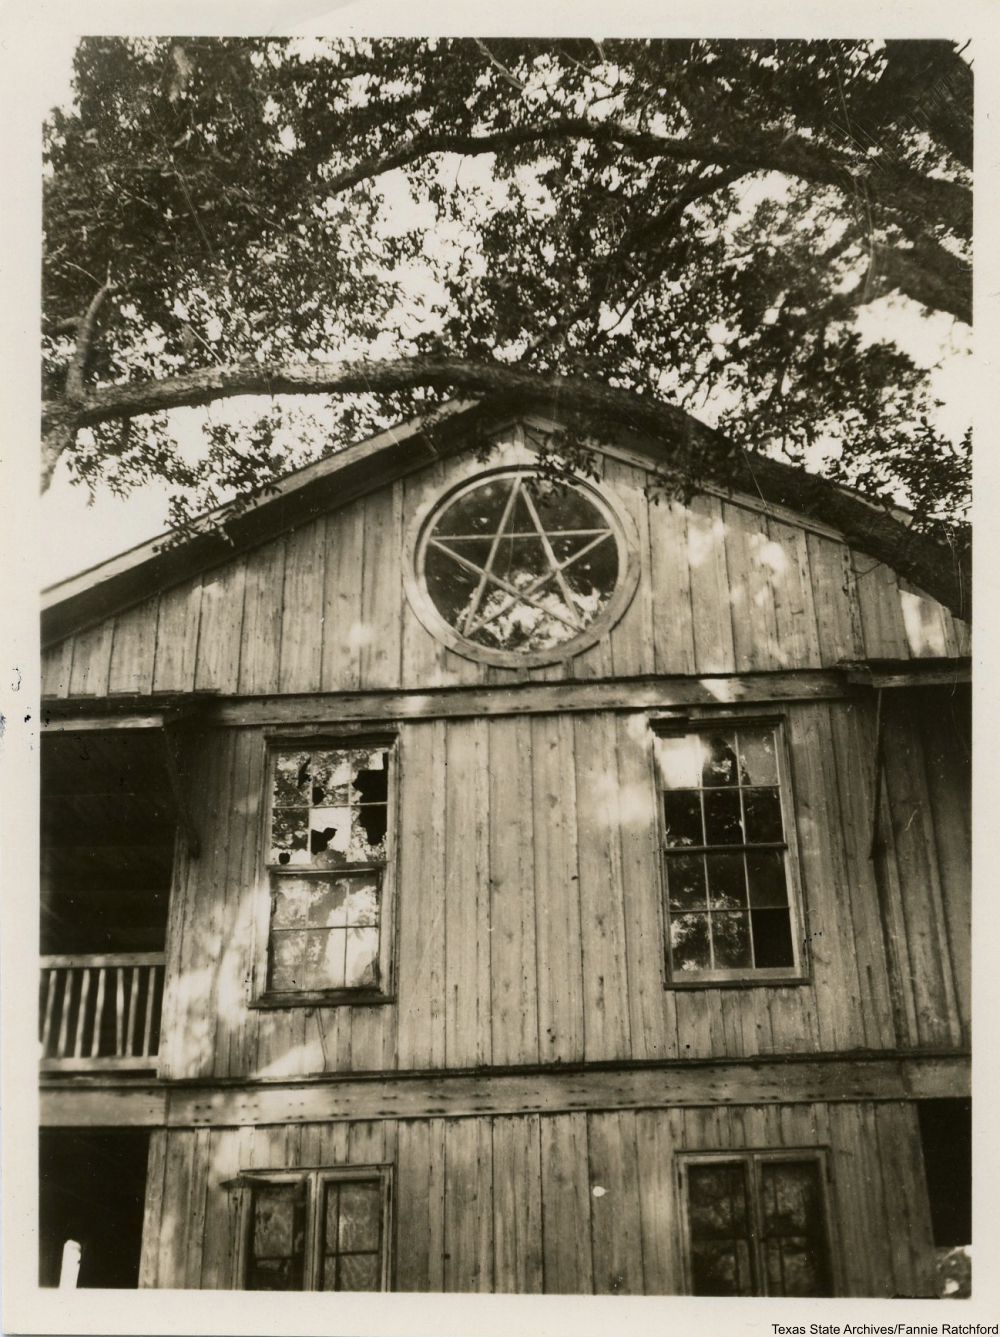 Images from 1930s Photographer Fannie Ratchford Capture the Houses of Old Texas